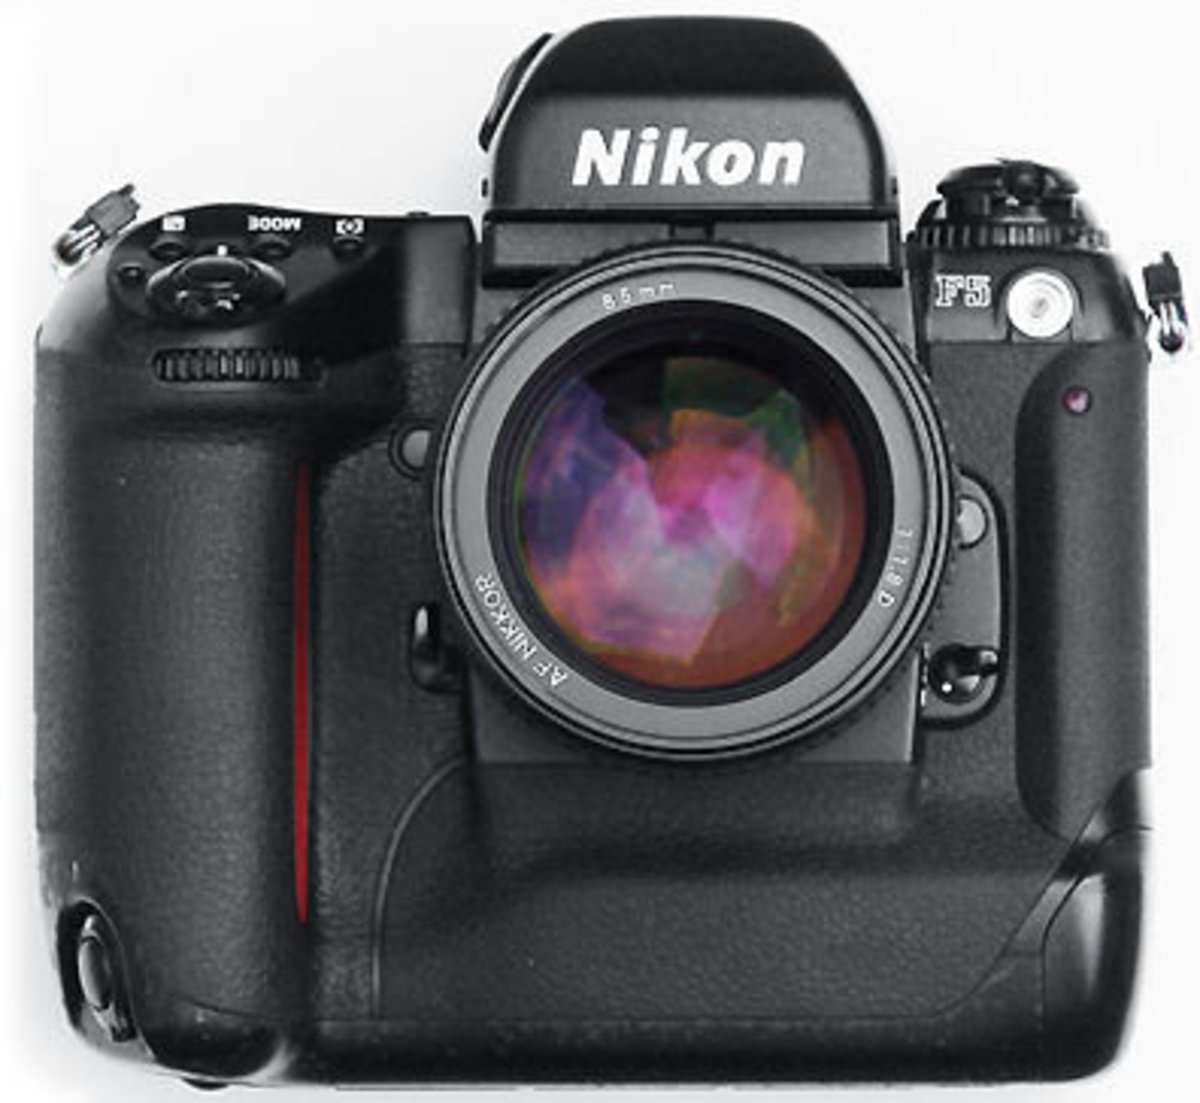 Nikon F5 : The Most Wanted 35mm Film Camera?